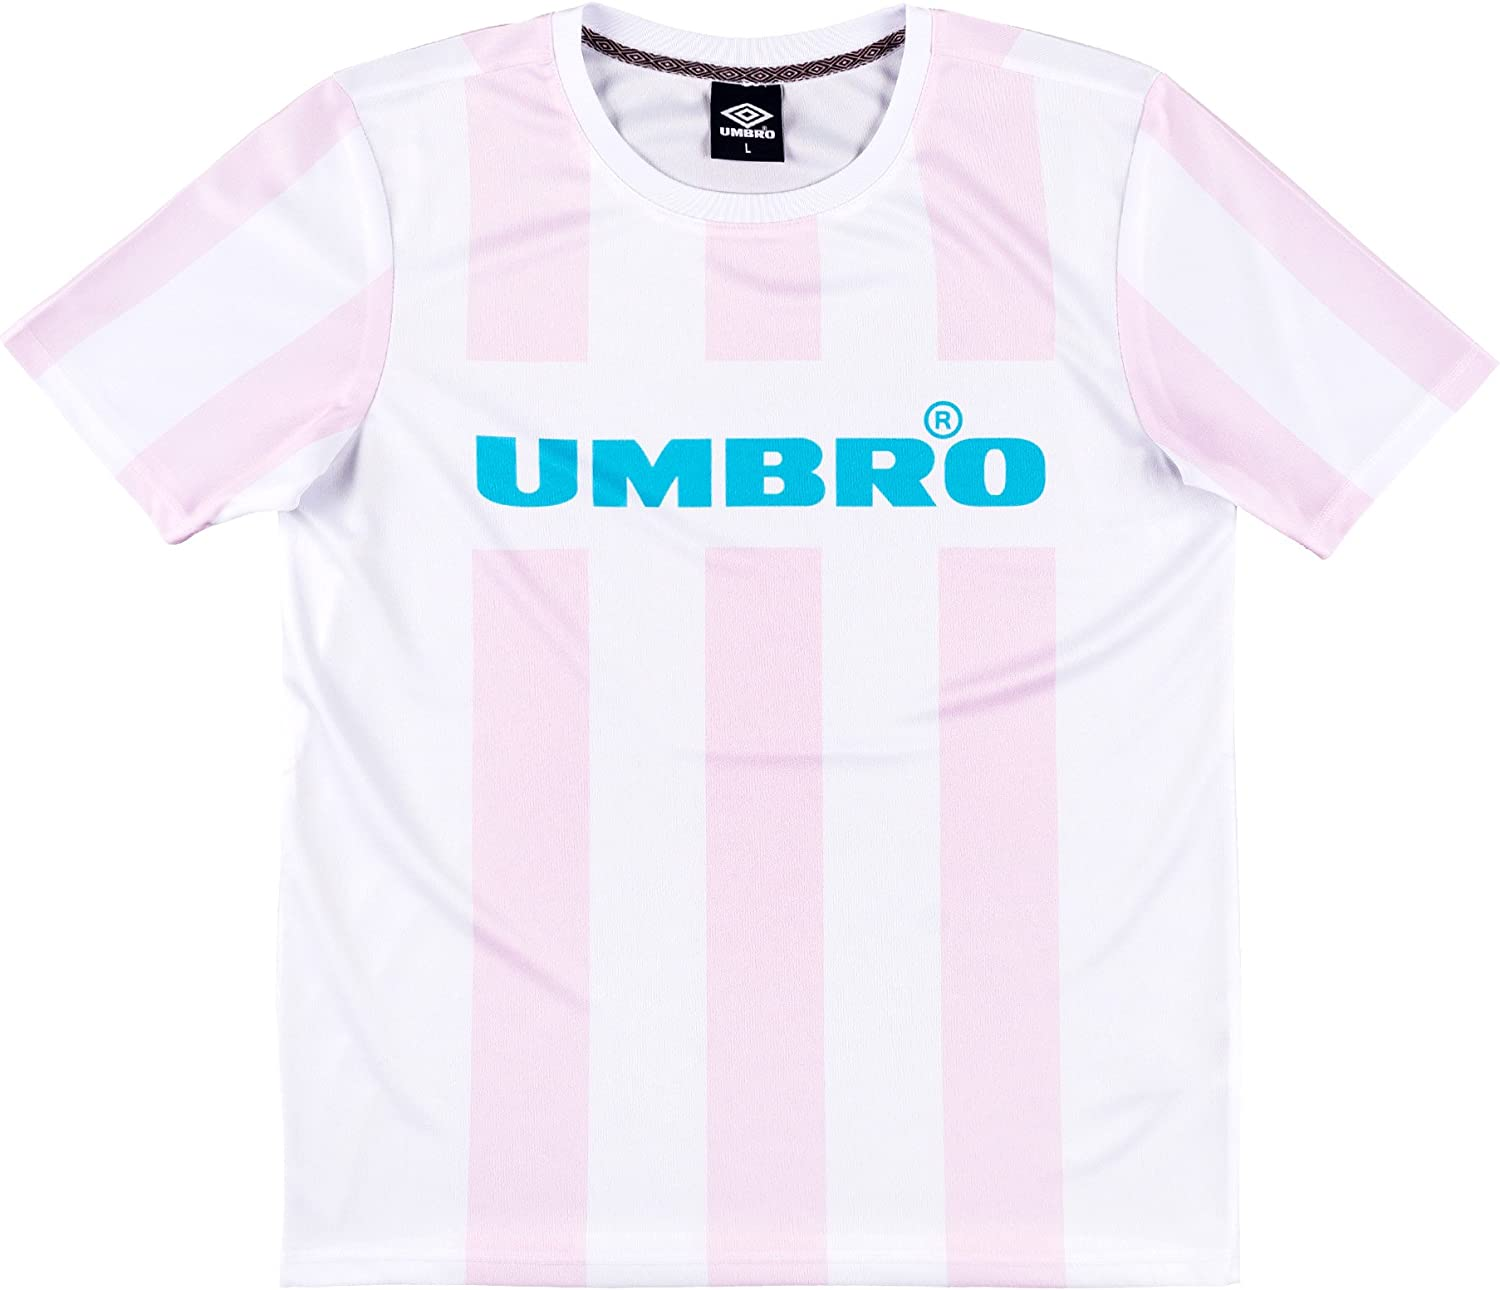 umbro t shirts women's